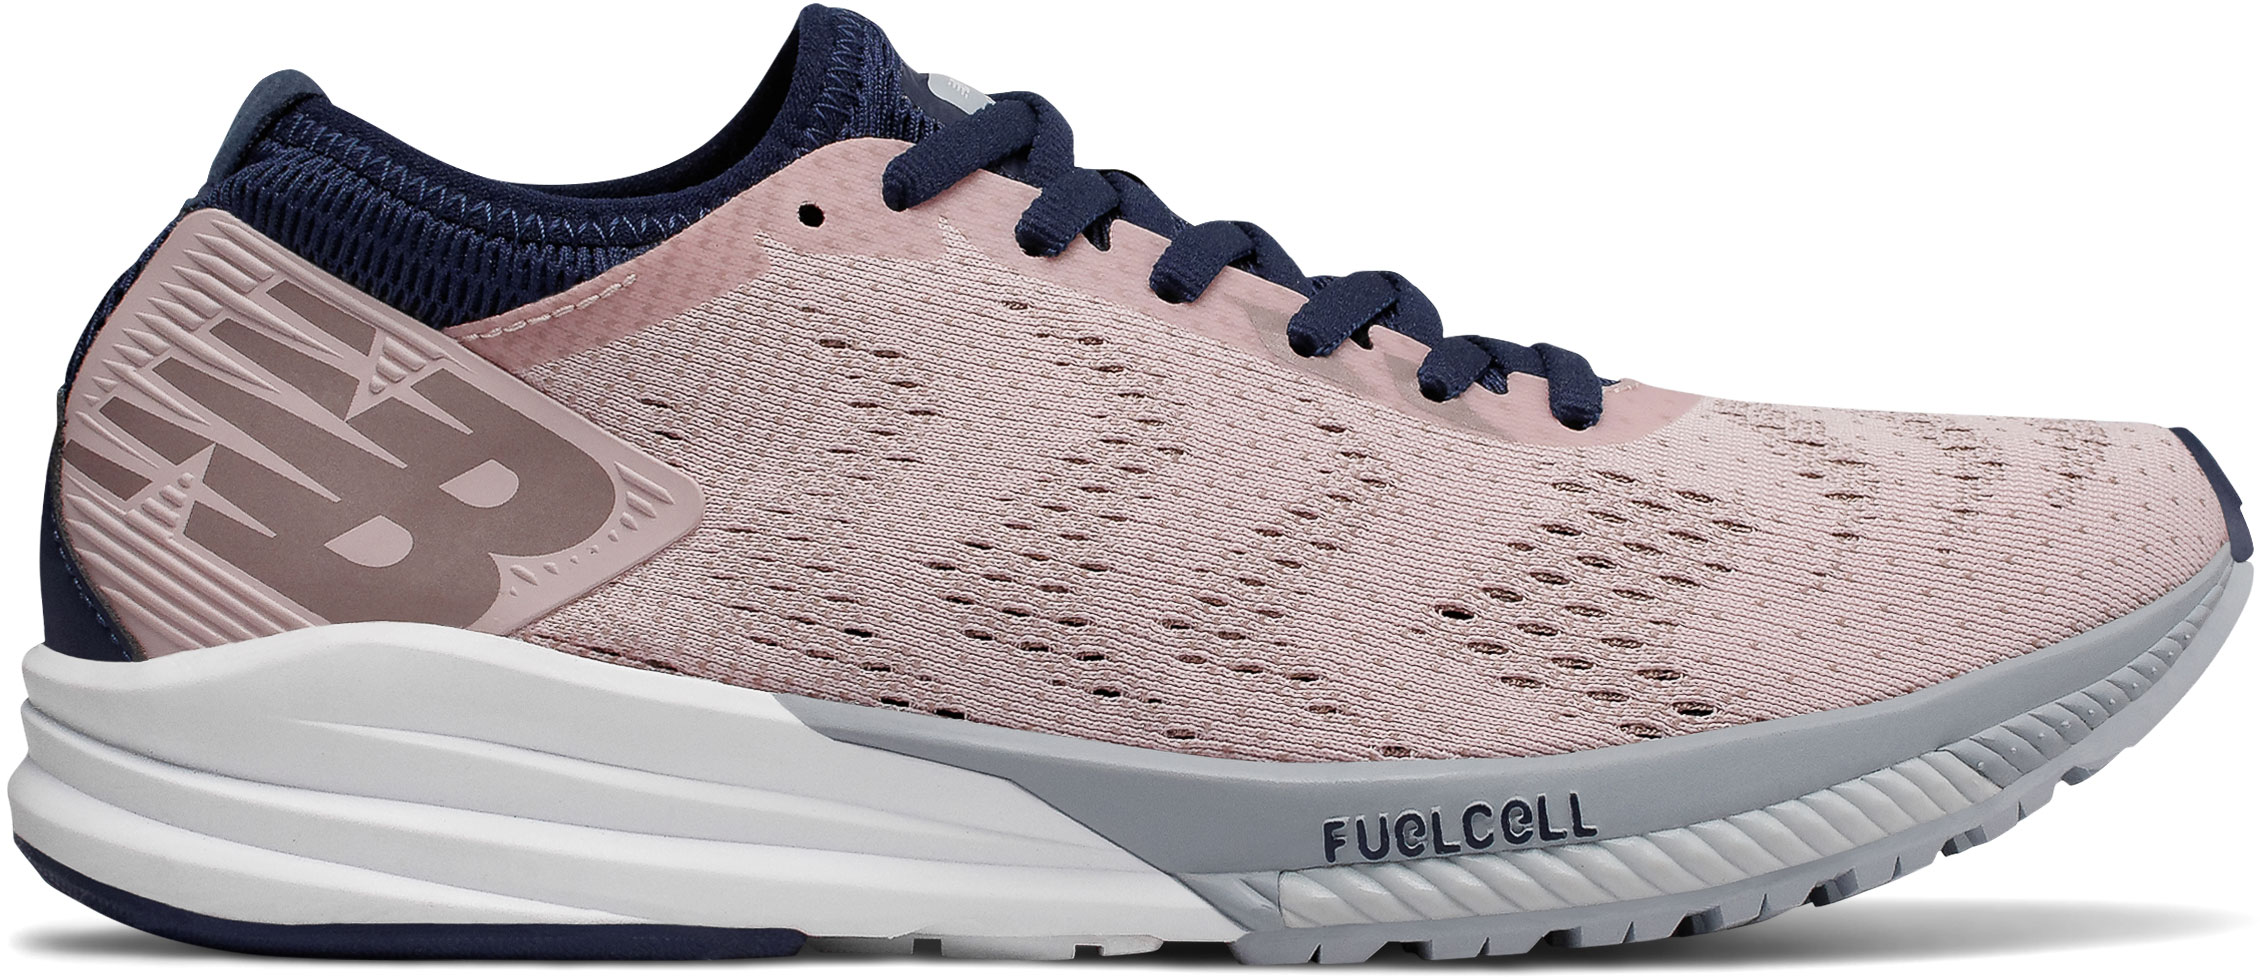 64a71036d9 ... New Balance Women s FuelCell Impulse WFCIMPB Conch Shell-Light Cyclone  ...